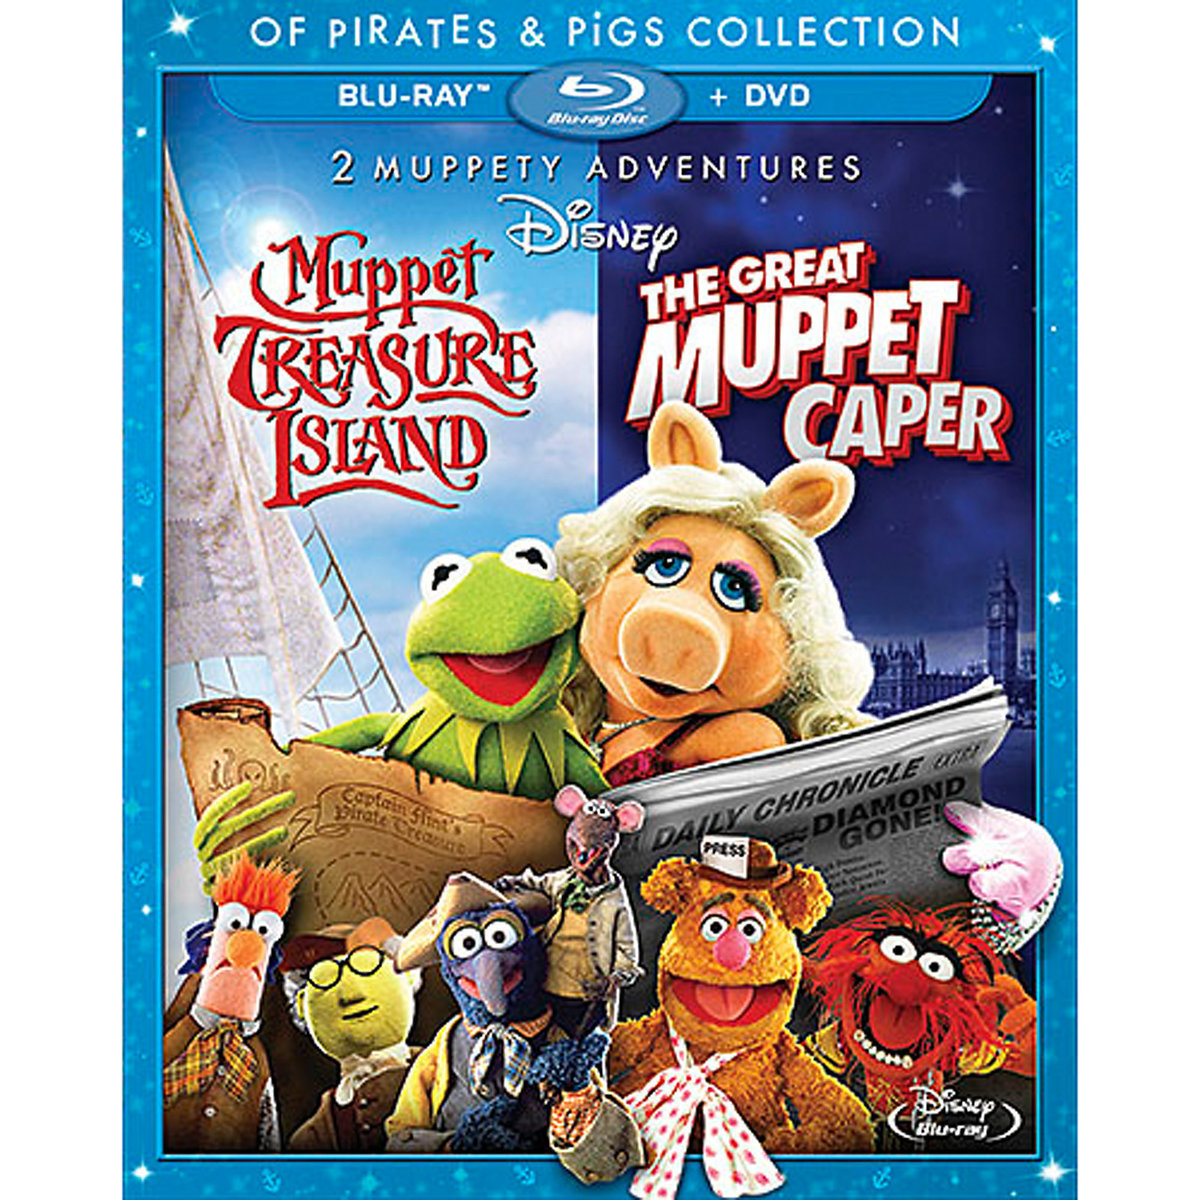 Muppet Treasure Island u0026 The Great Muppet Caper 2-Movie